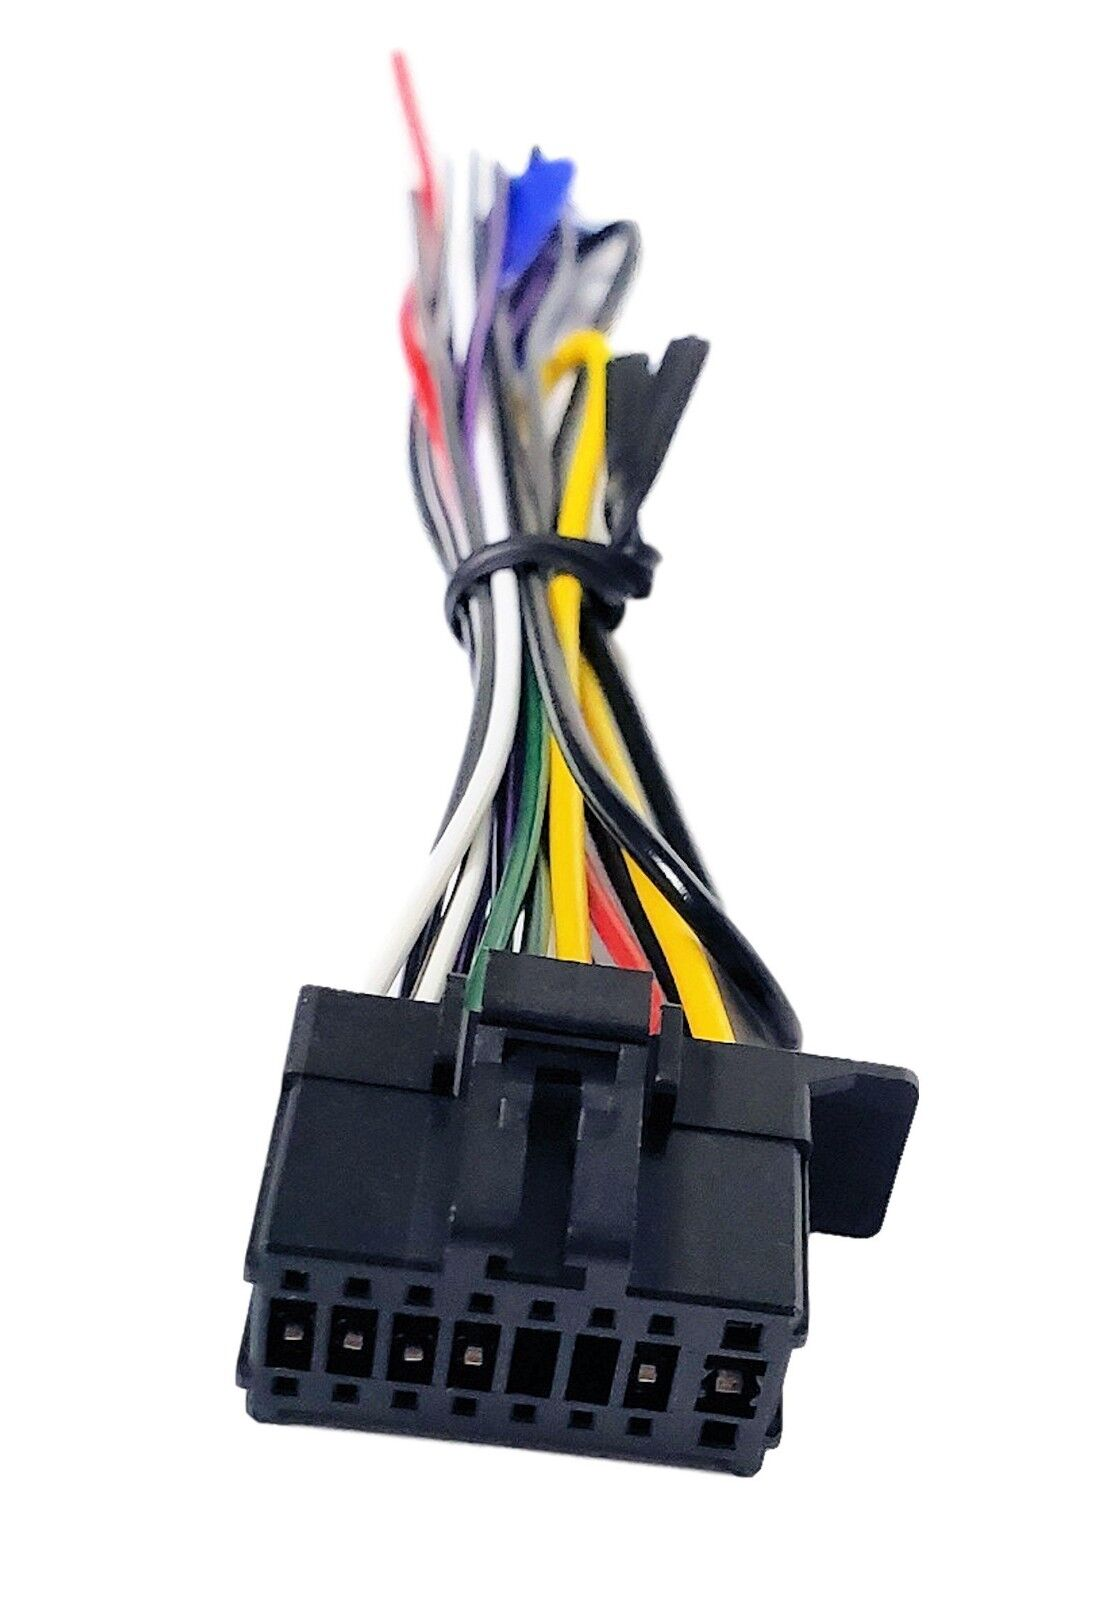 Genuine Pioneer Wire Harness CDP1480 for Genuine Pioneer Stereos Radios